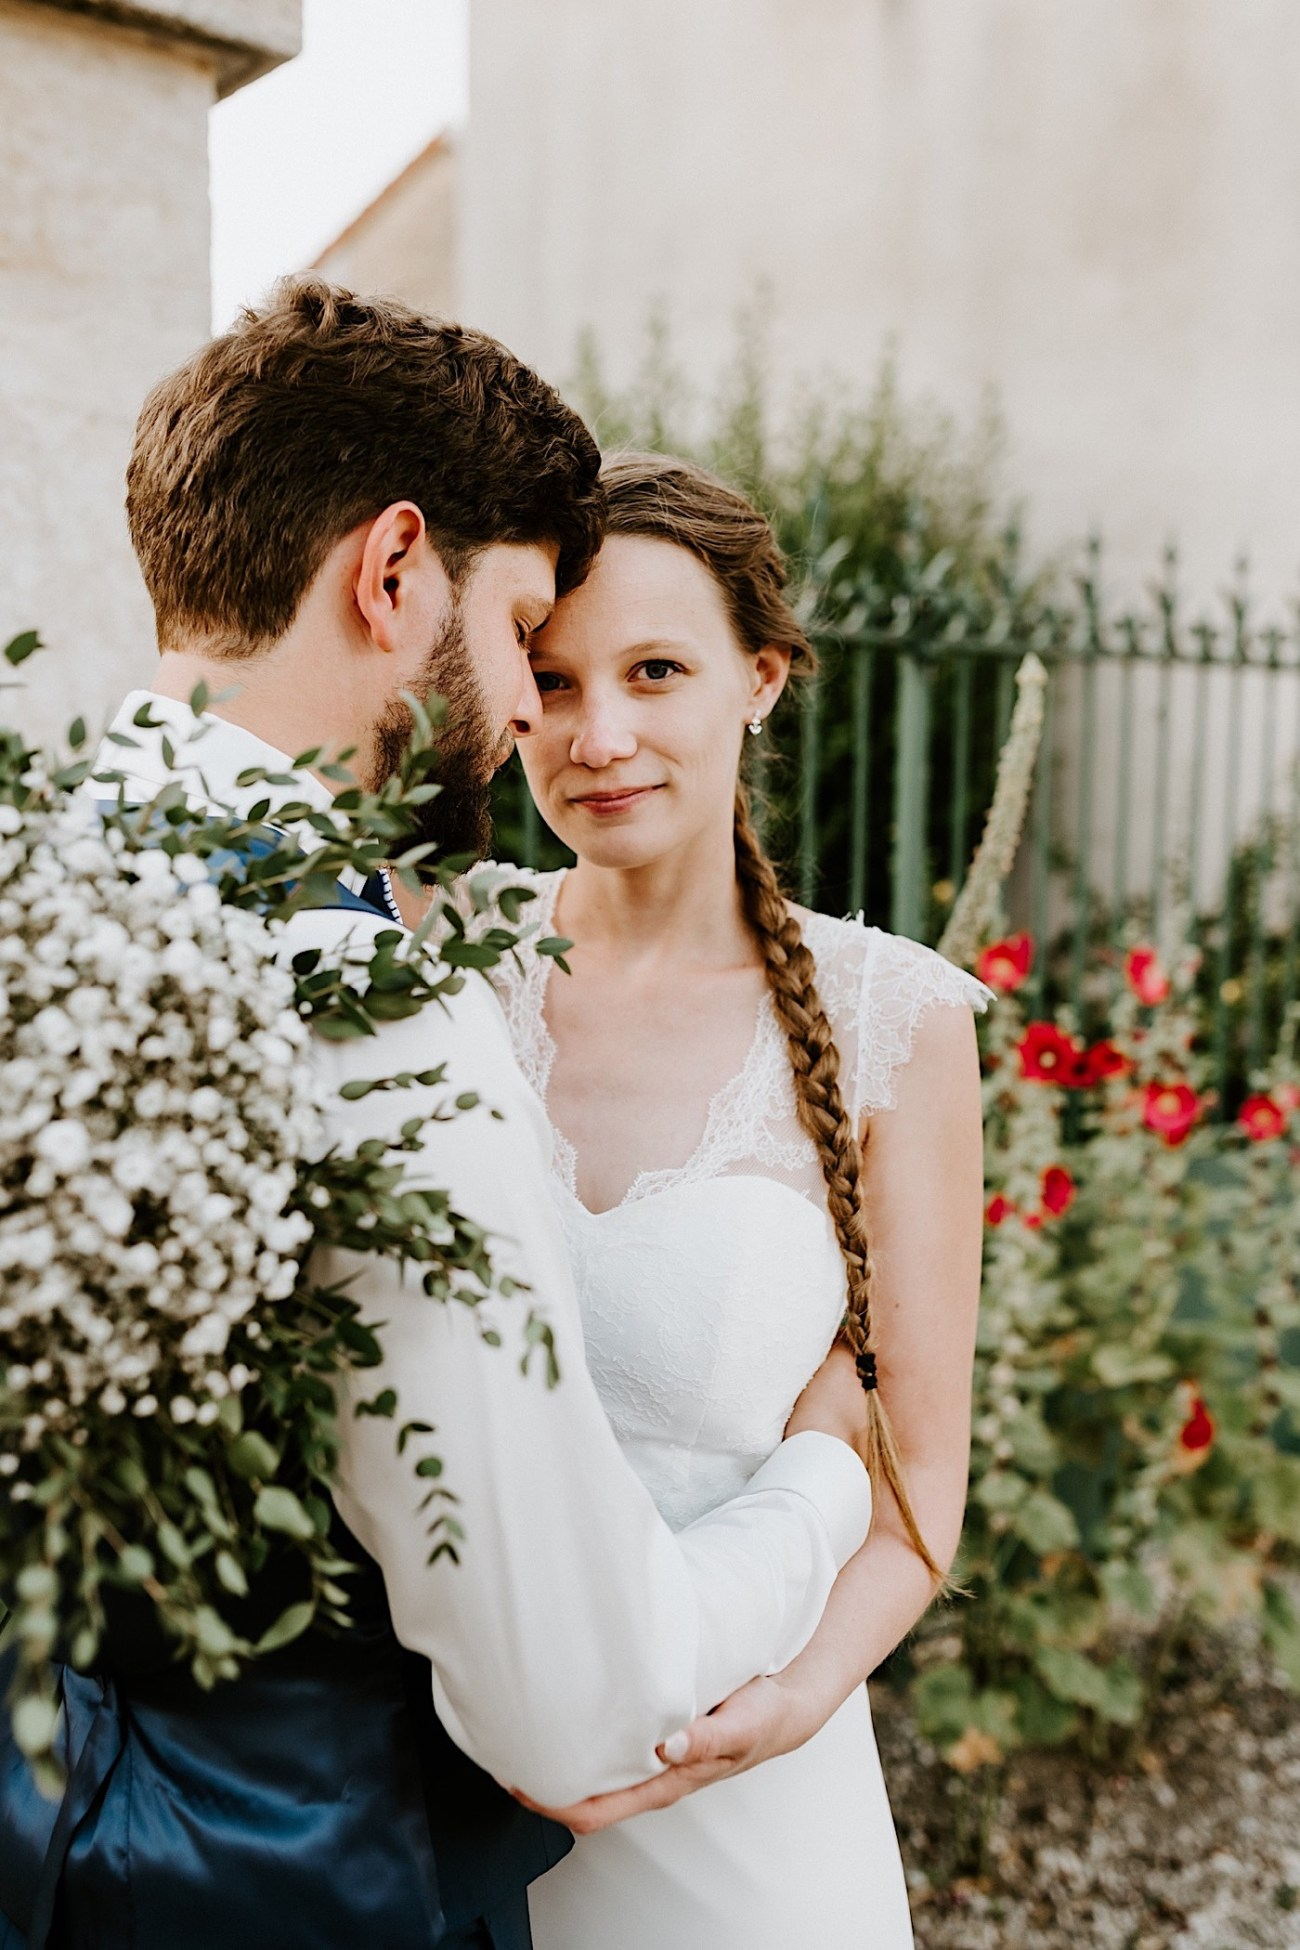 French Rural Wedding After Wedding Day Photos Paris Wedding Photographer 011